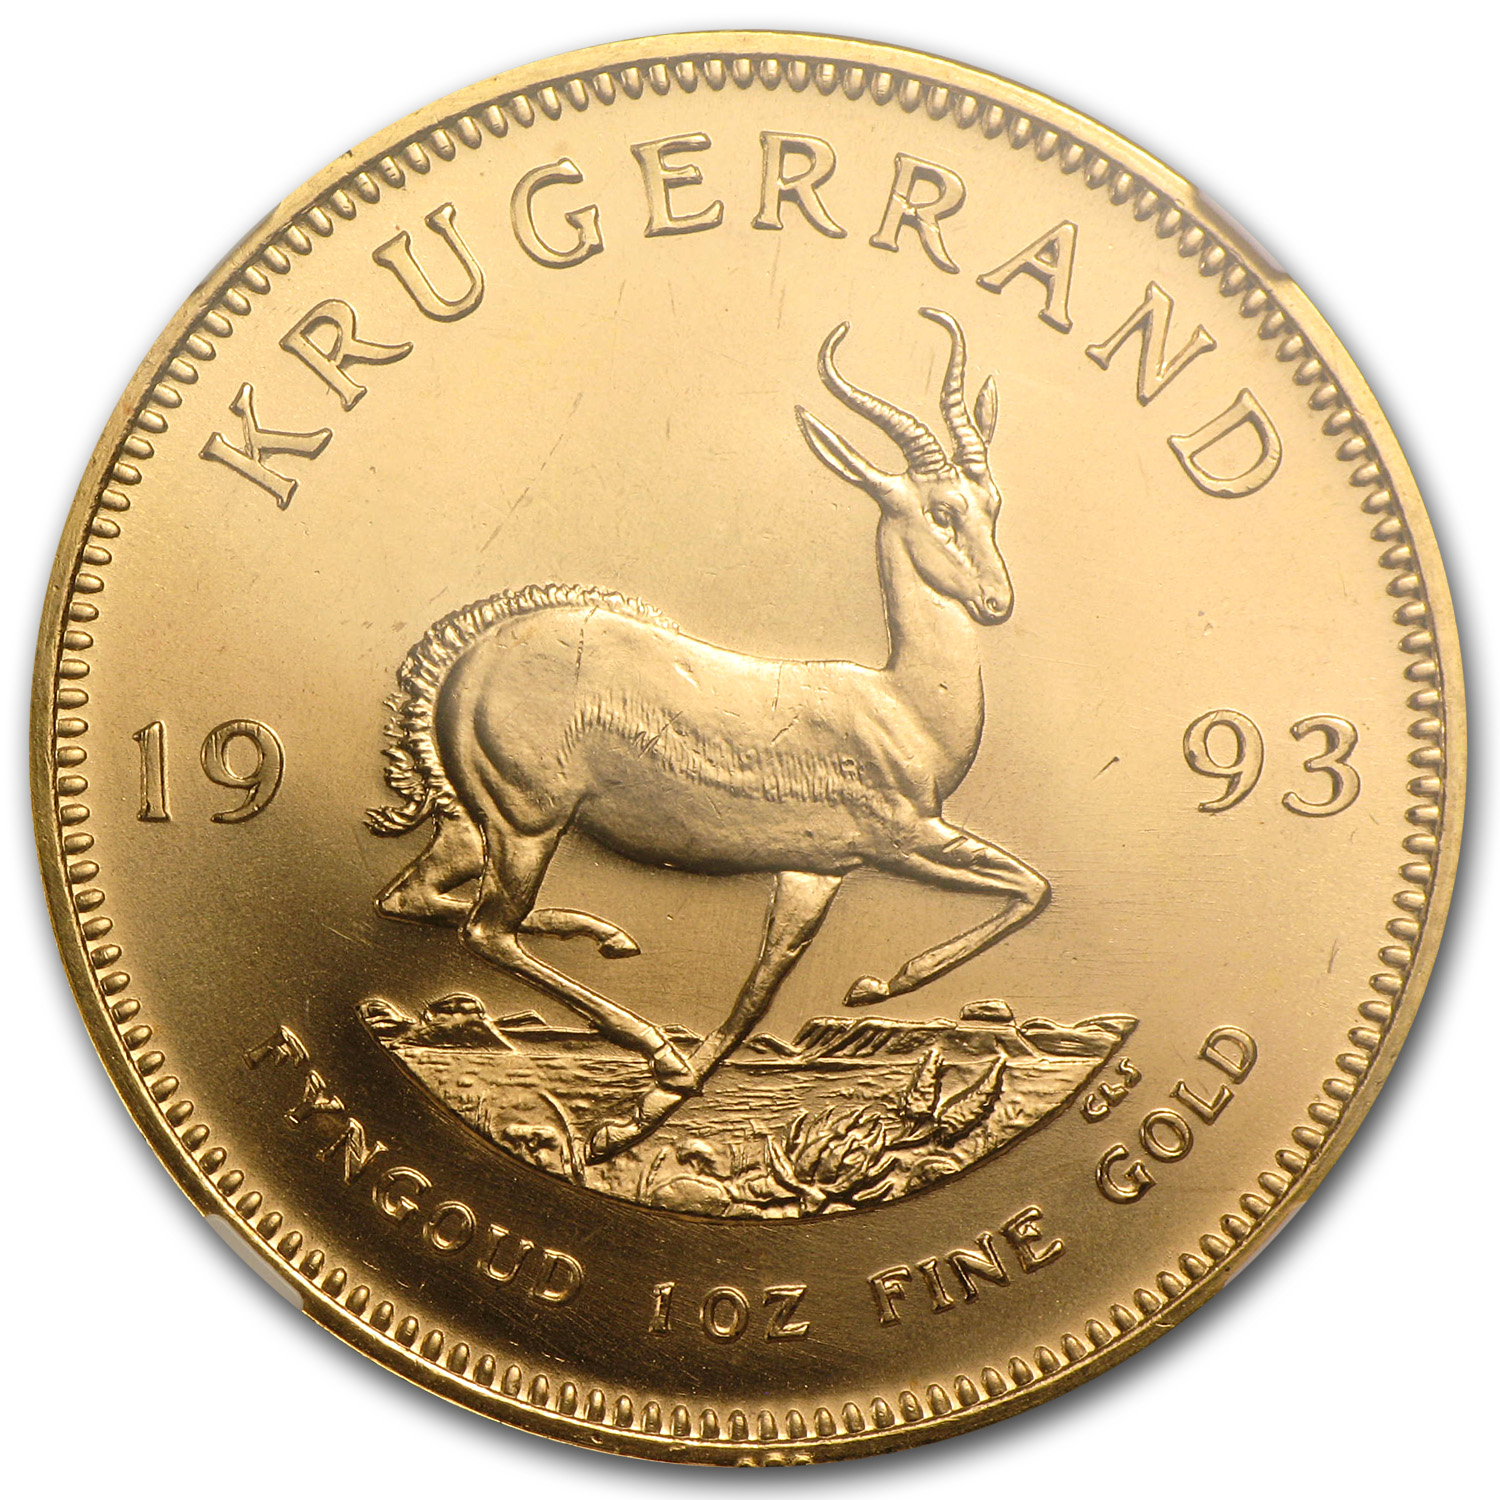 1993 South Africa 1 oz Gold Krugerrand MS-67 NGC